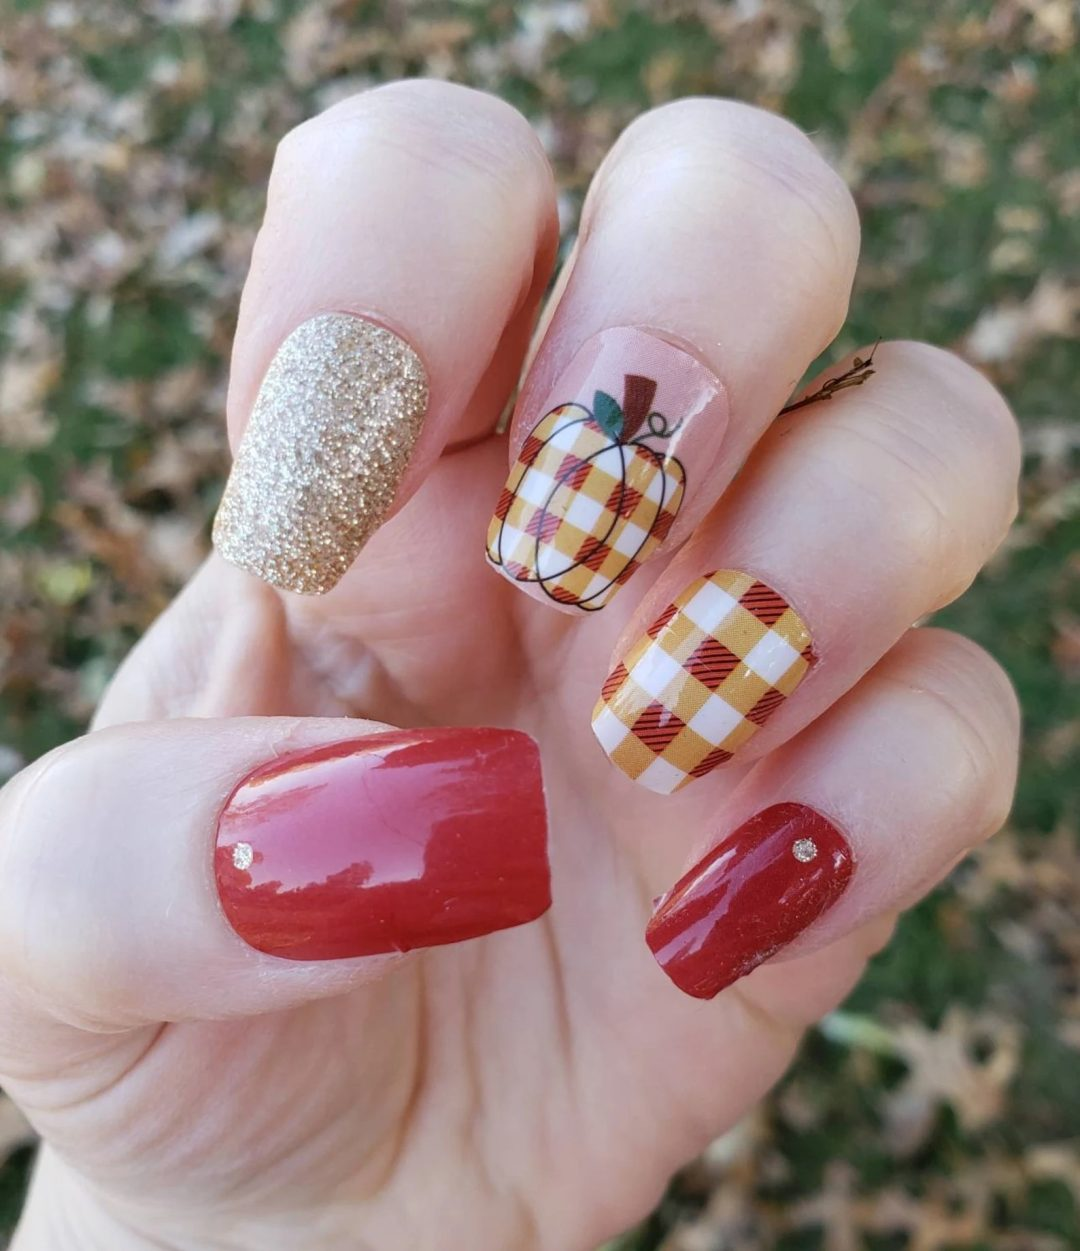 Pumpkin patch plaid nails for fall